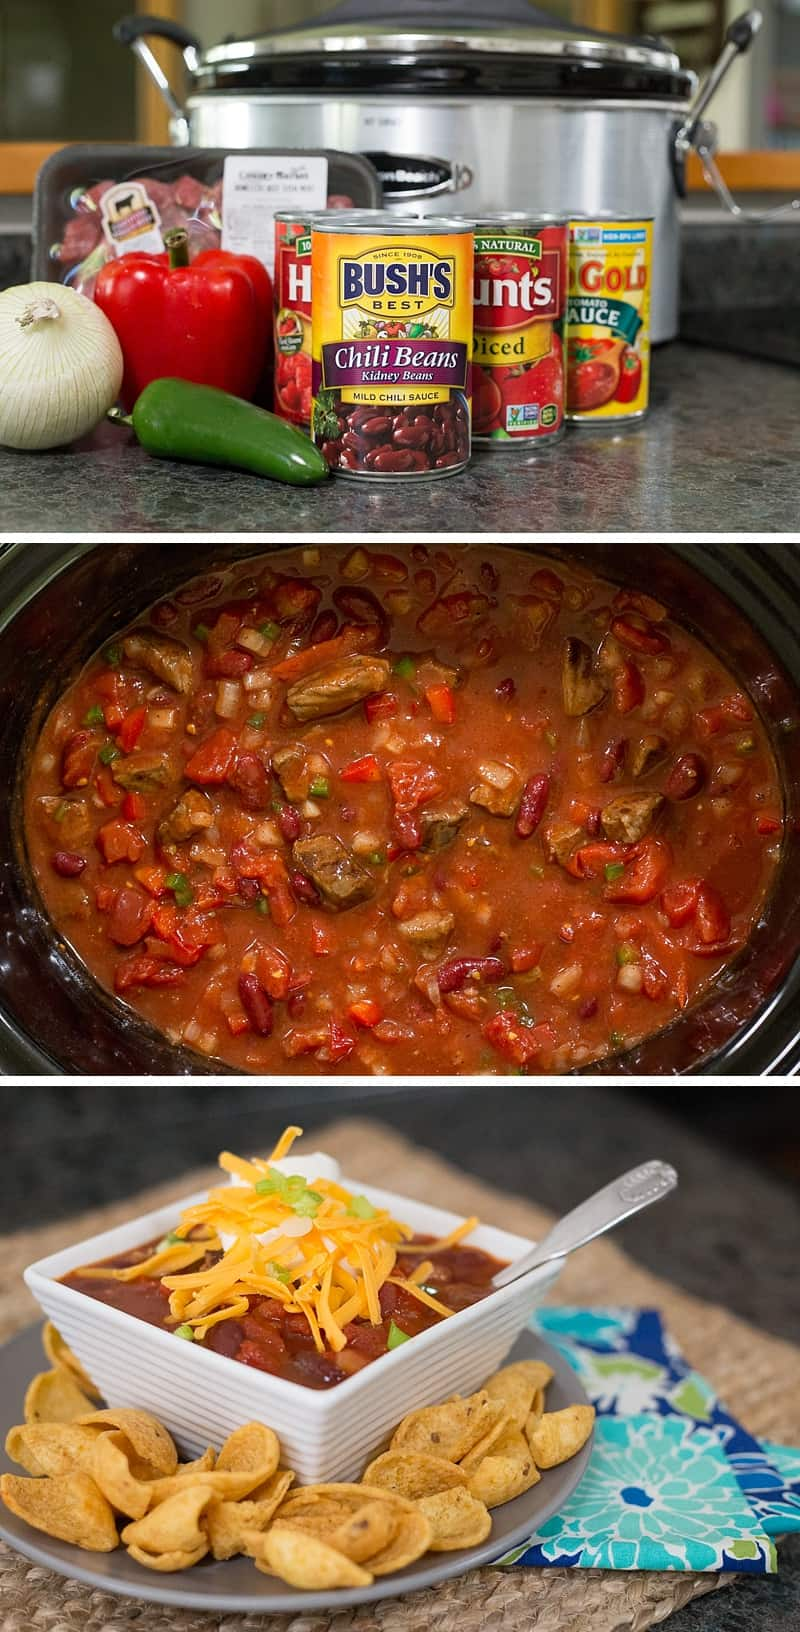 Best chili EVER! This slow cooker recipe is so SIMPLE to make. You can use ground beef, steak or go vegetarian. It is perfect for a quiet evening at home or for hosting a family party. Plus you can freeze leftovers for an easy weeknight dinner on a school night. *This is one of my go-to dinners that the whole family loves. Perfect comfort food.